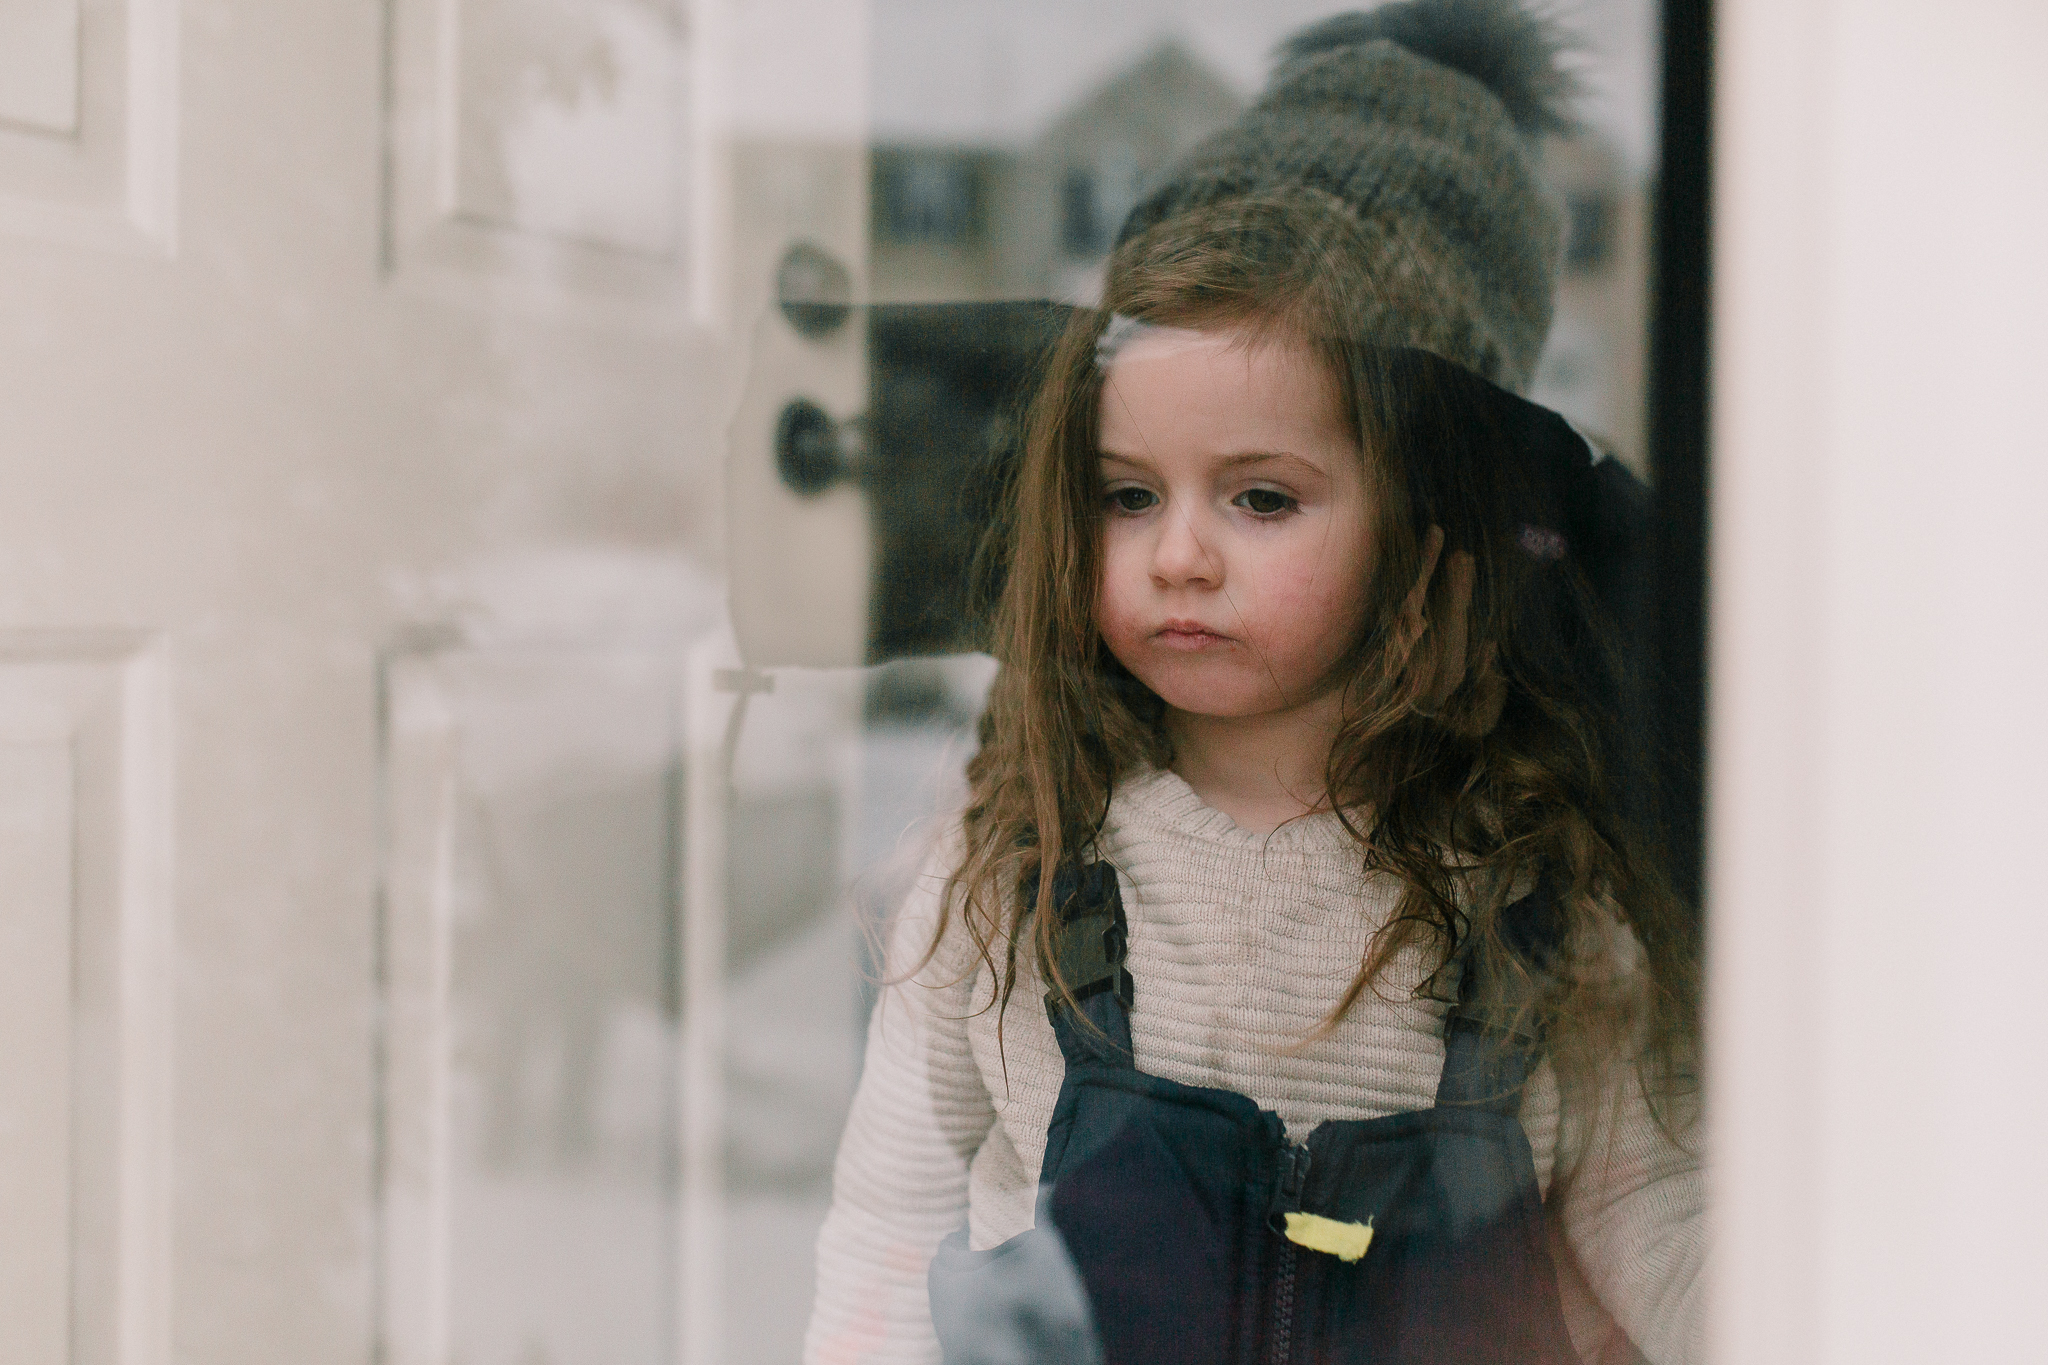 girl window door reflection winter snow childhood lifestyle documentary Ashburn Virginia Marti Austin Photography